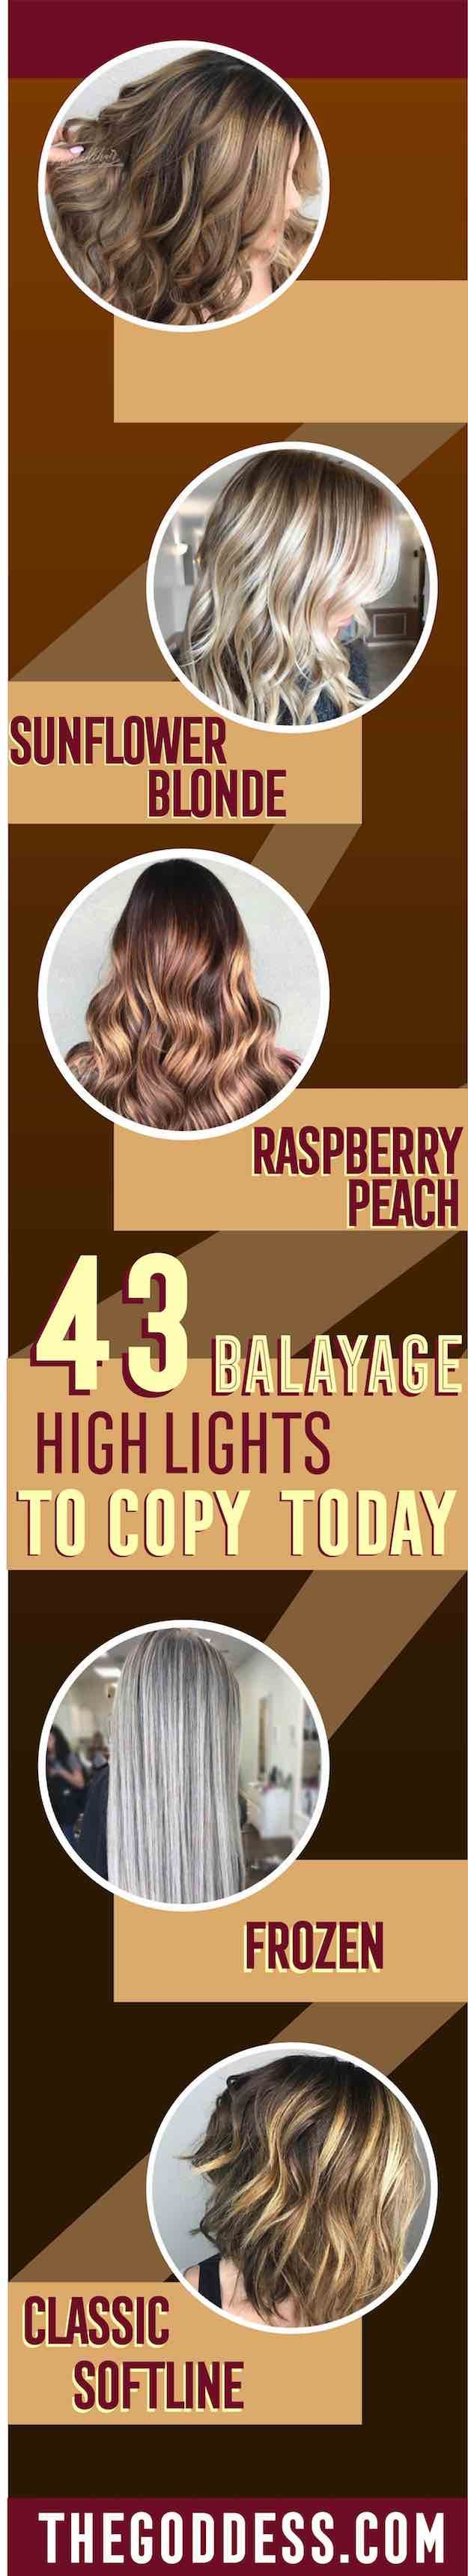 15 best DIY Hairstyles images on Pinterest